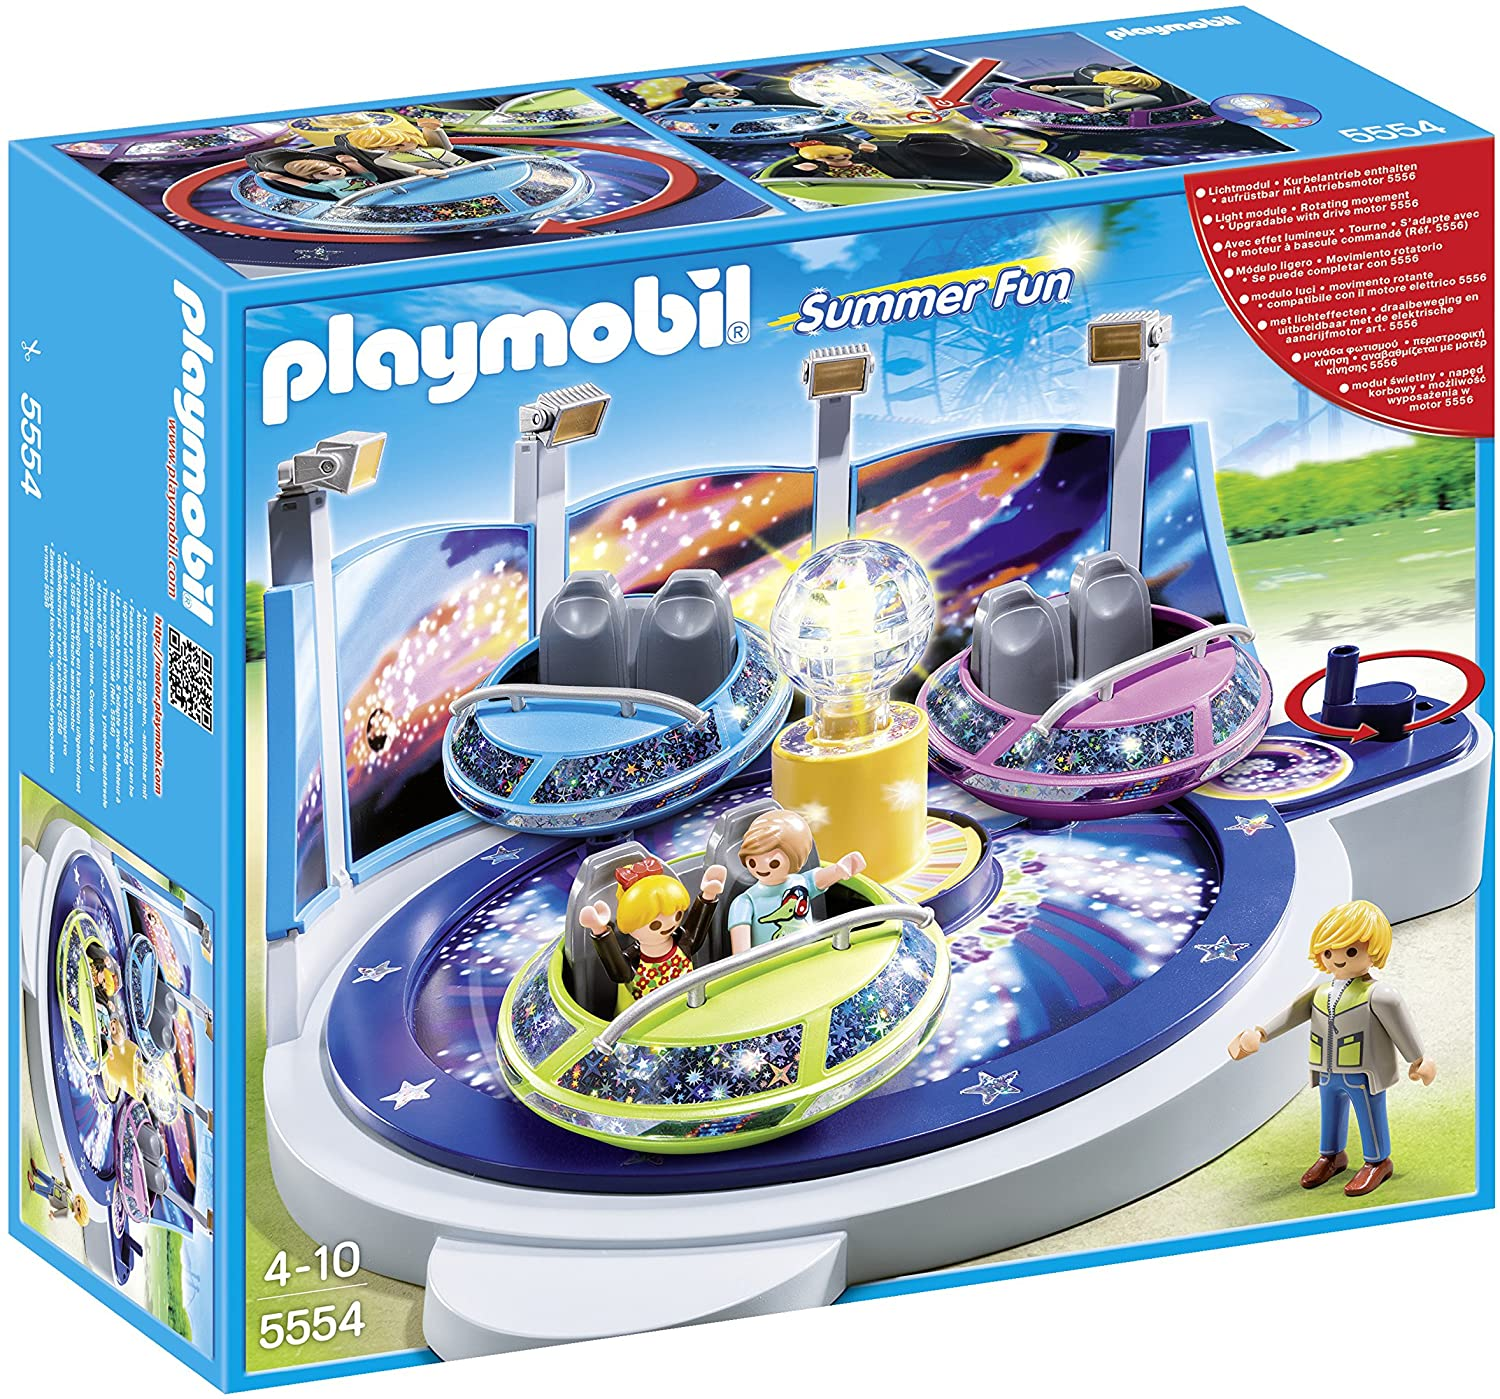 Spinning Spaceship with Lights Playmobil 4-10